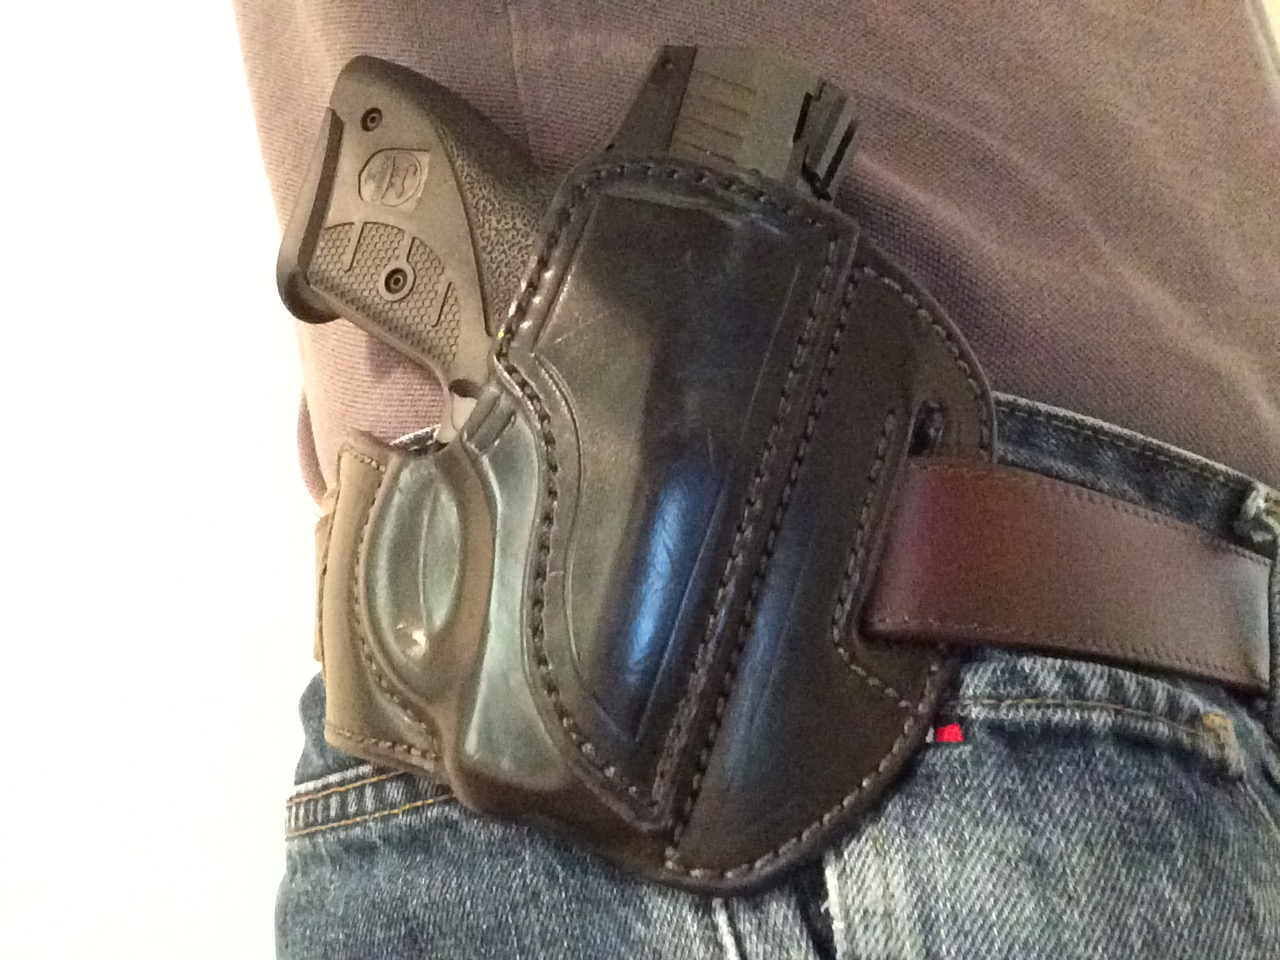 Boberg in Holster